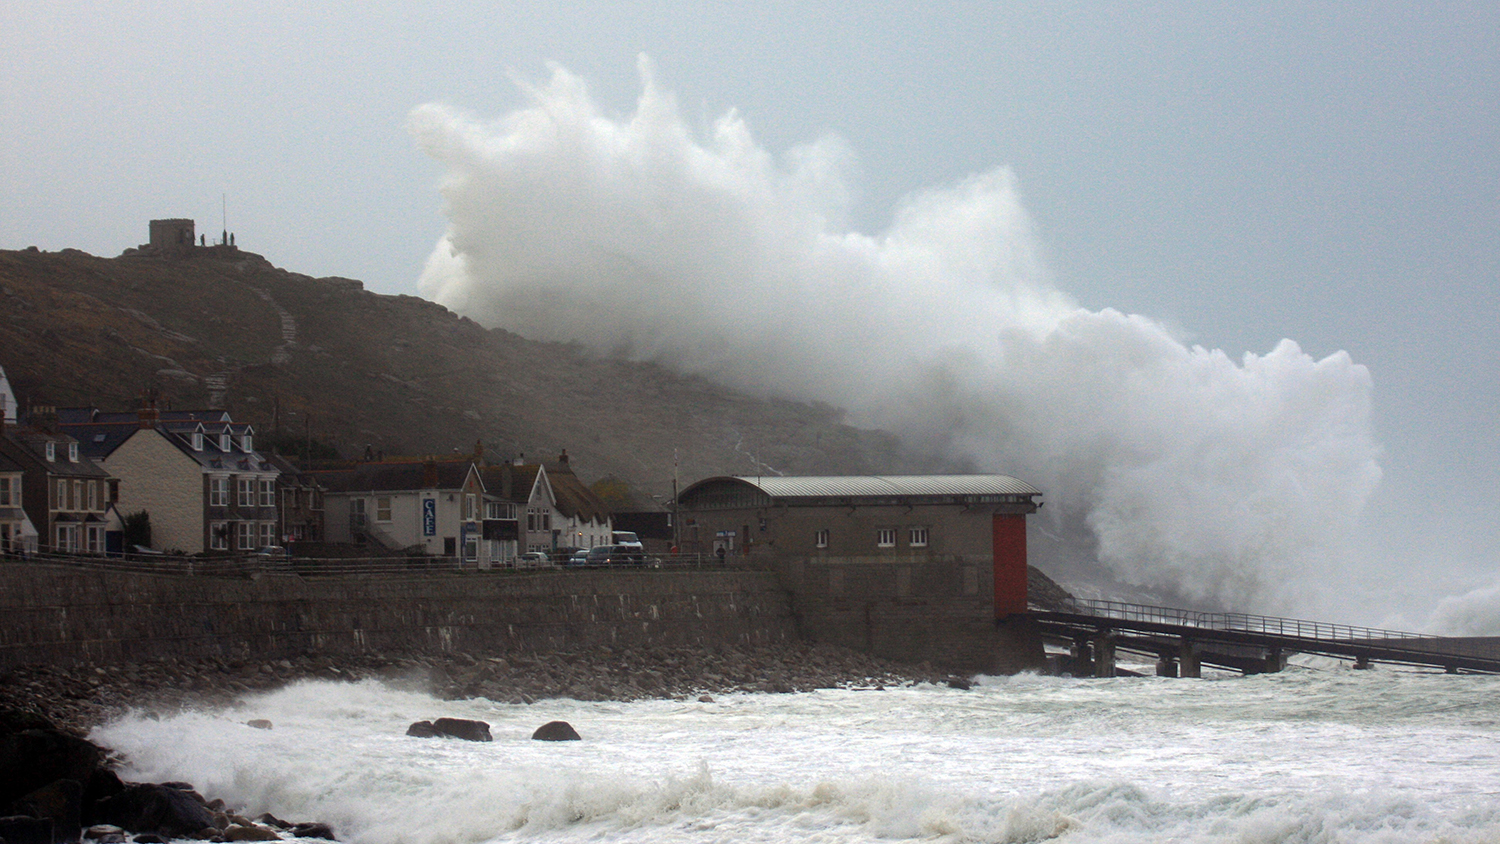 February storm at Sennen Cove with a huge wave breaking over the headland and the lifeboat station in the foreground